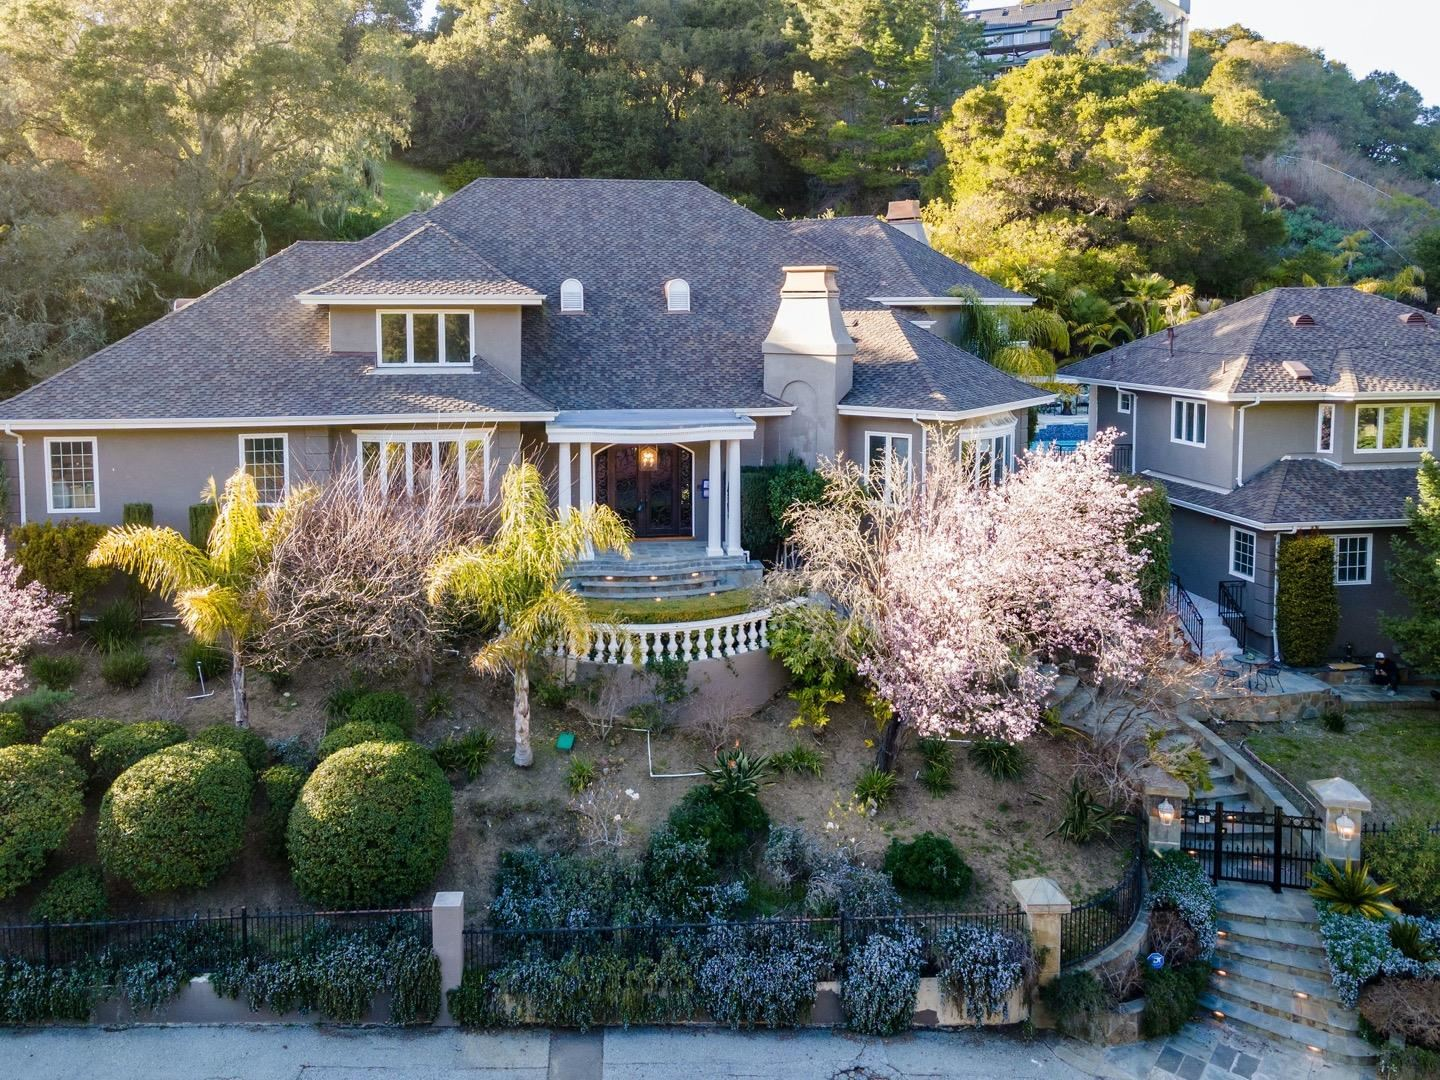 35 Brooke Court, Hillsborough, CA 94010 - #: ML81839943